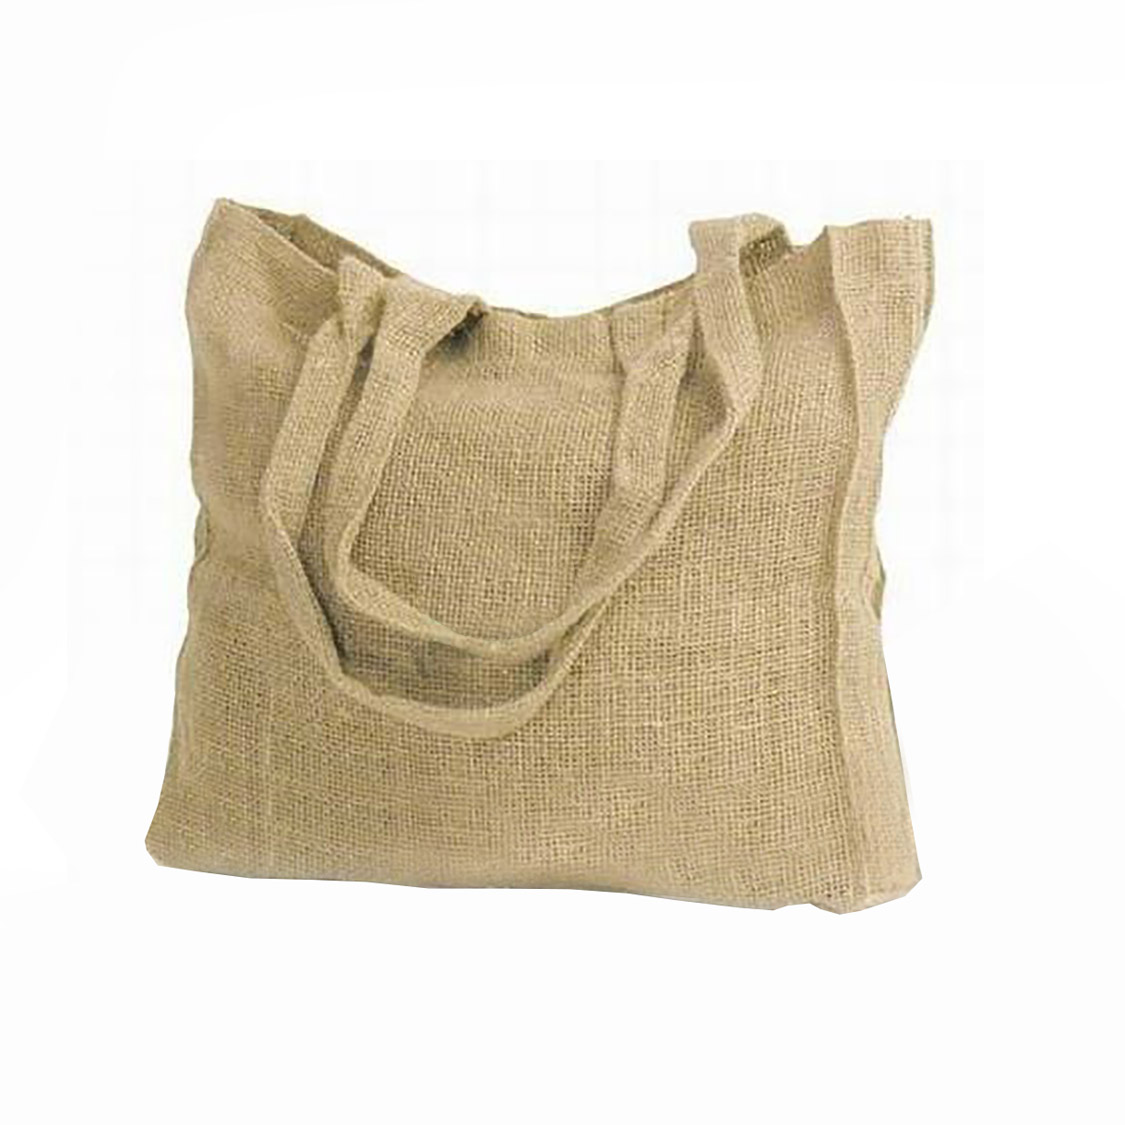 Hemp shoulder bags from Chiang Mai, Thailand